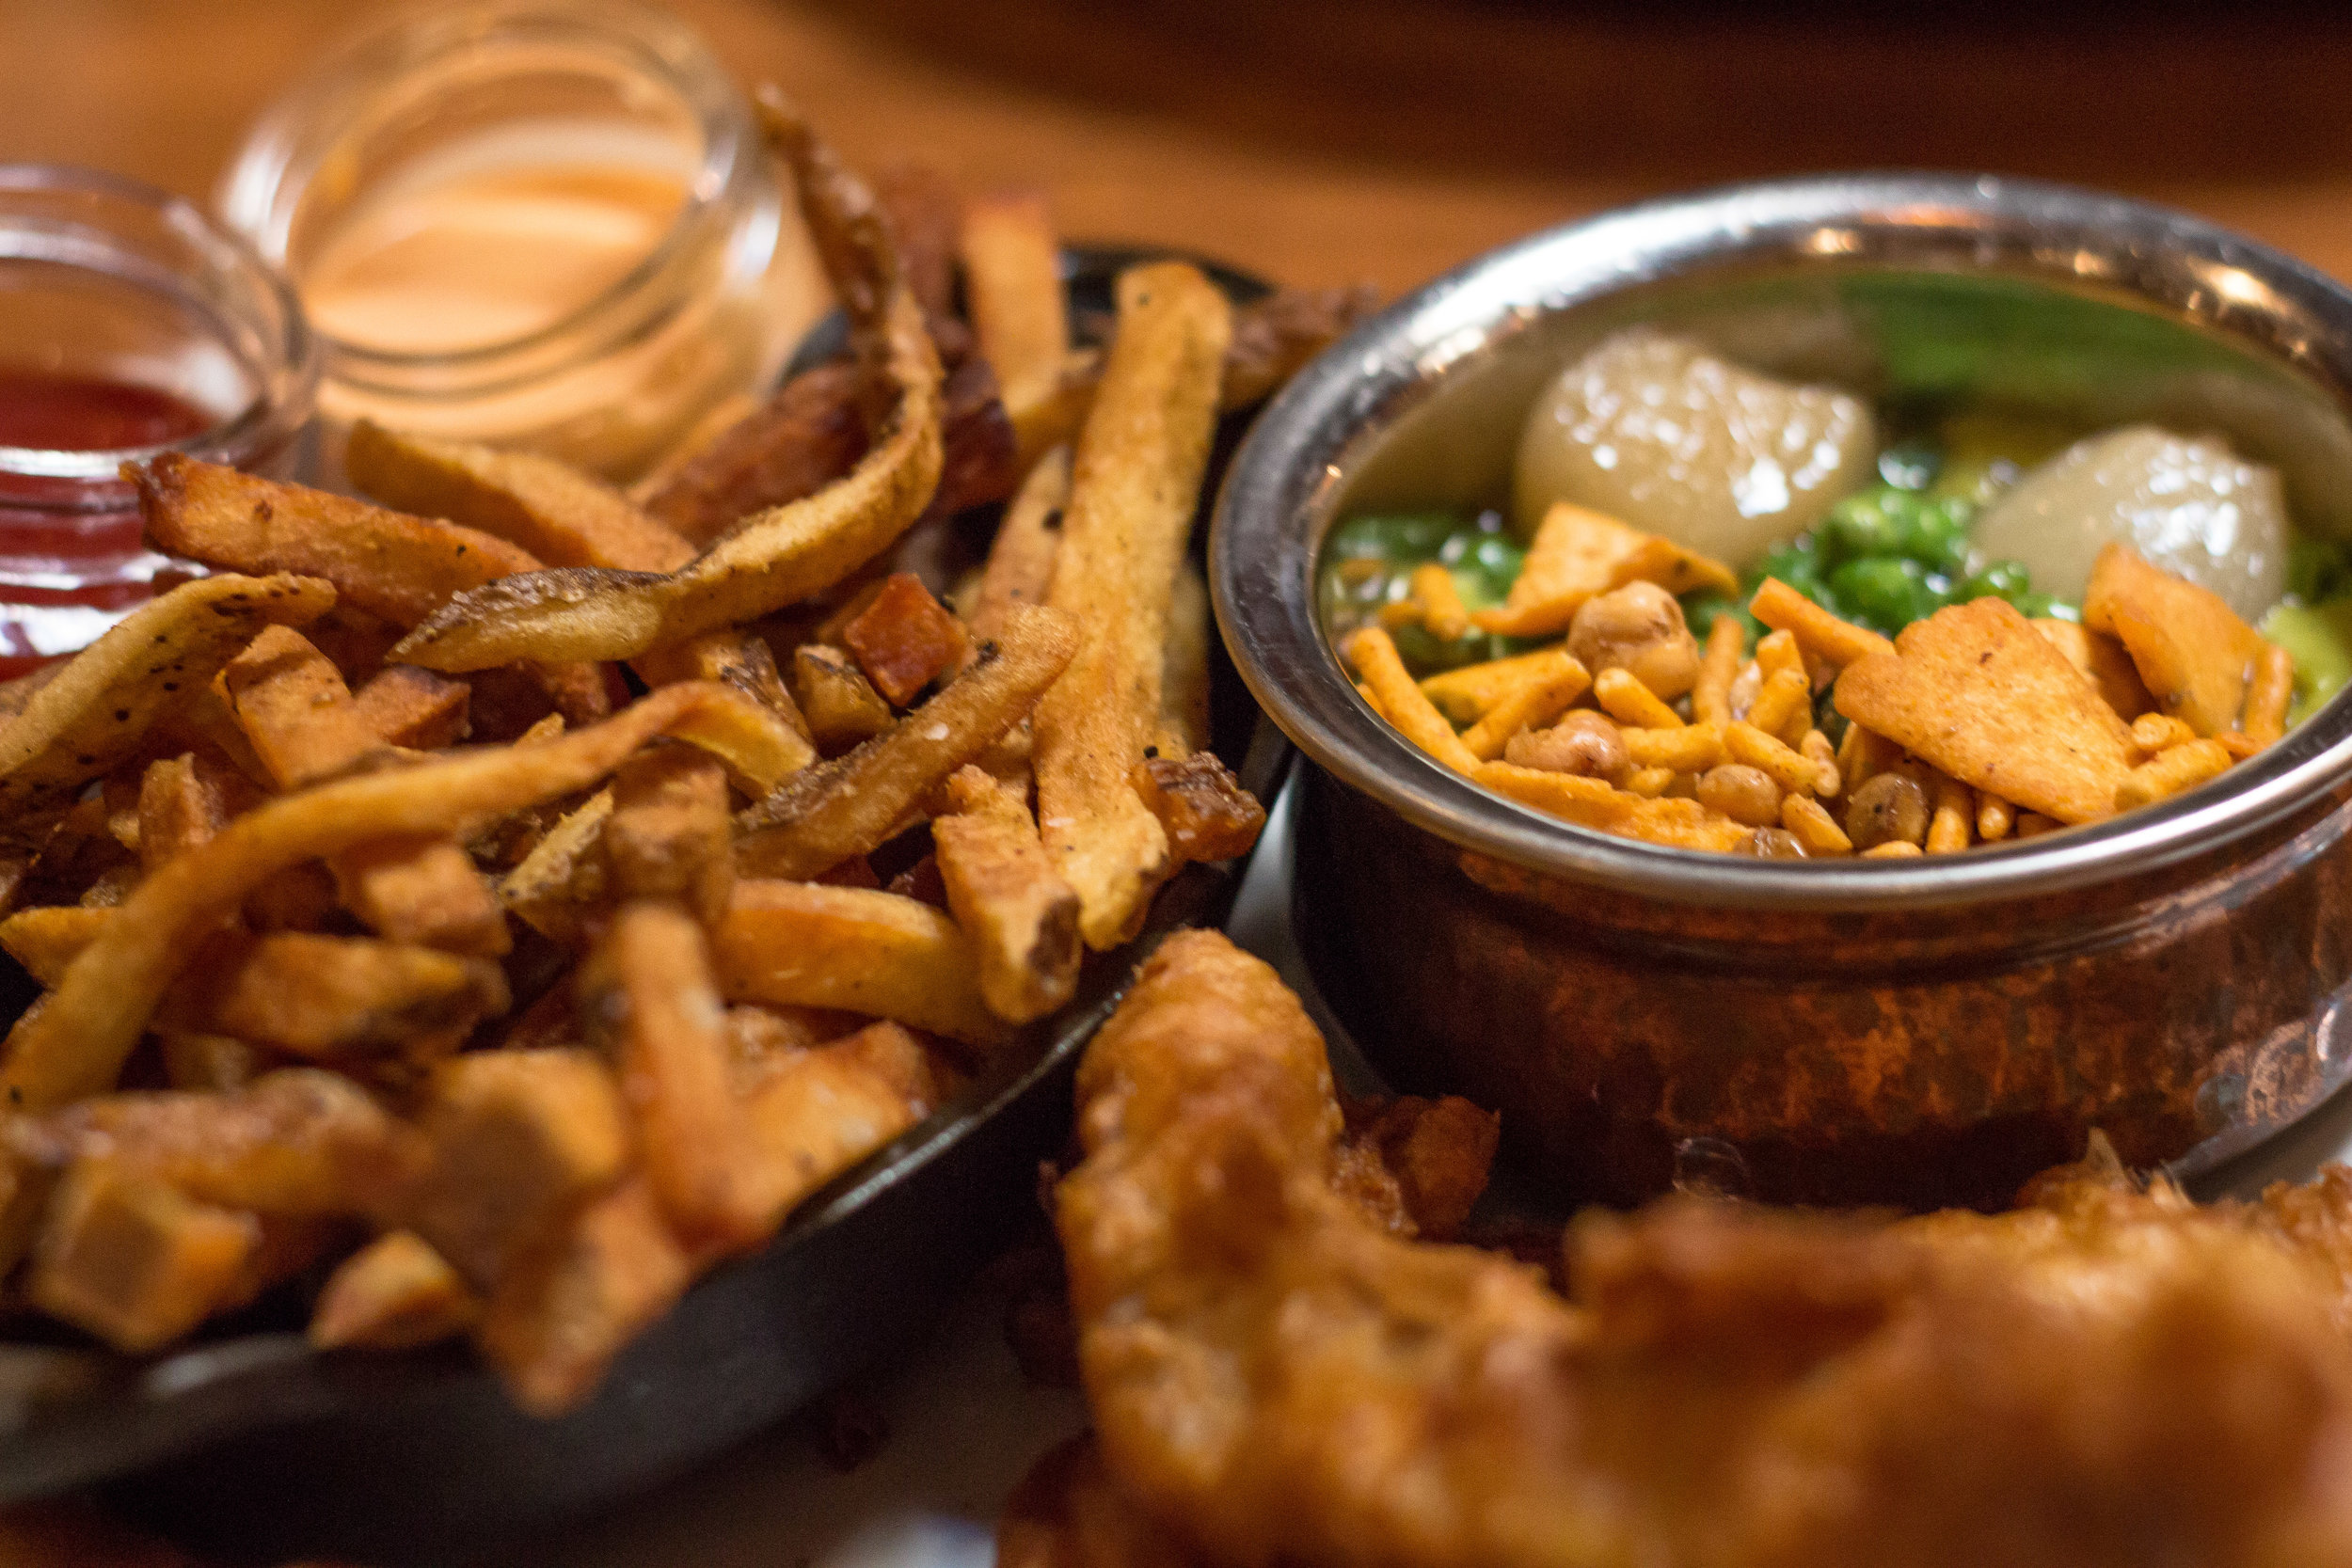 Montauk Fish and Chips Madras Tempura is a small feast of its own, featuring sides of mushy peas with pearl onions and curry fries, mixing flavors that run the gamut for a dish that pleases on multiple levels.